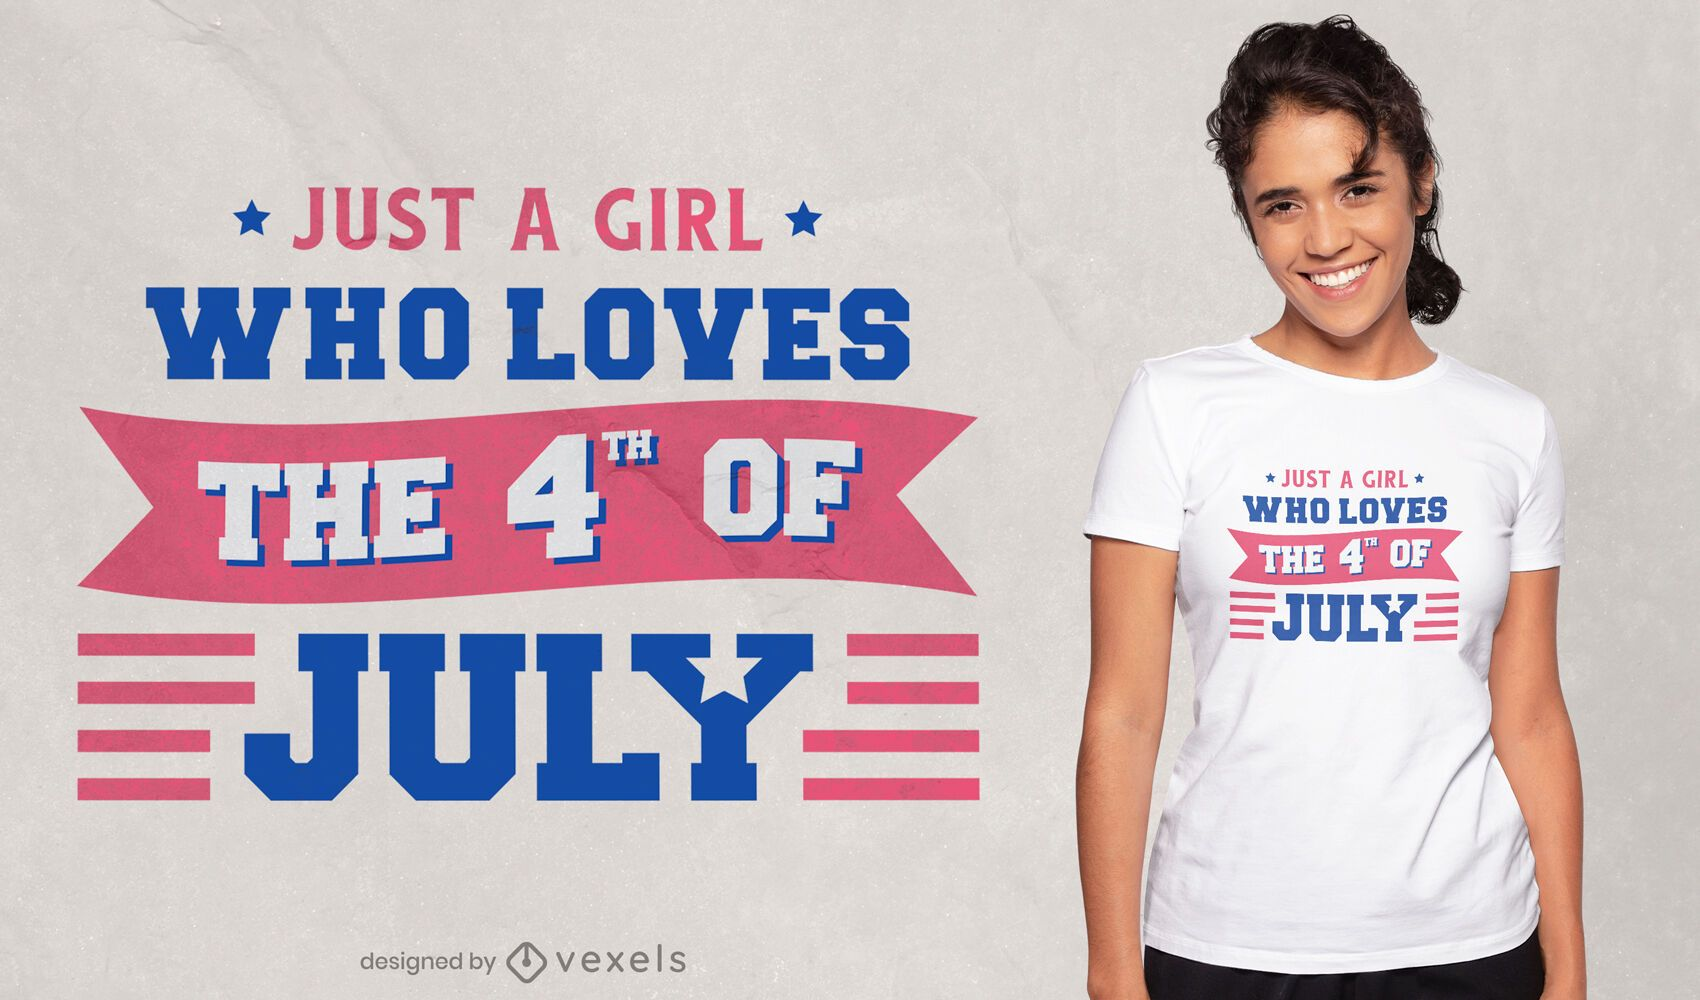 Fourth of july love girl quote t-shirt design